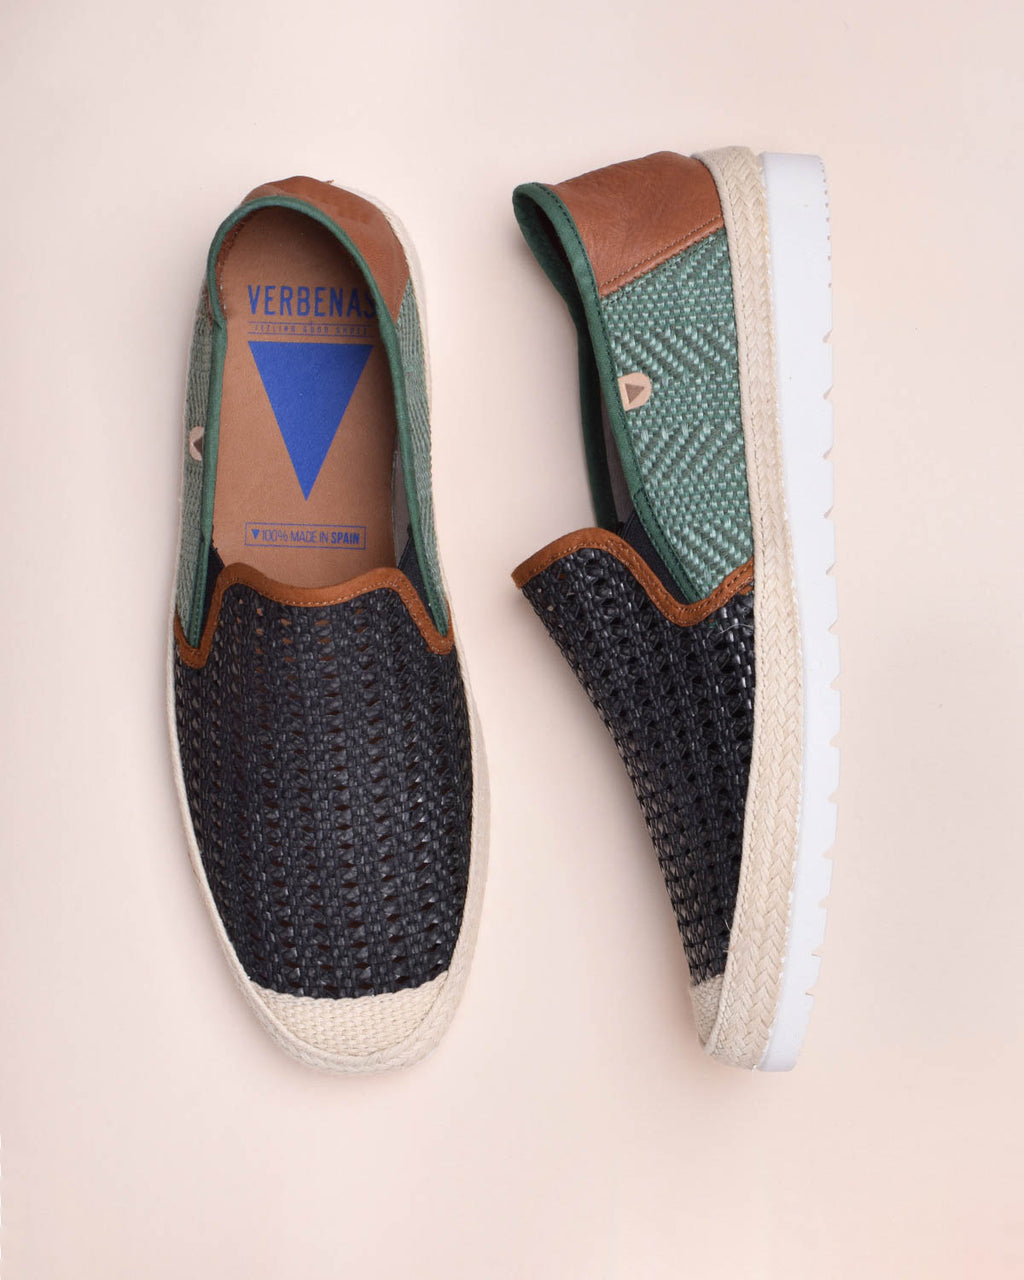 Blade Woven Leather Loafers - Black / Green - Verbenas USA